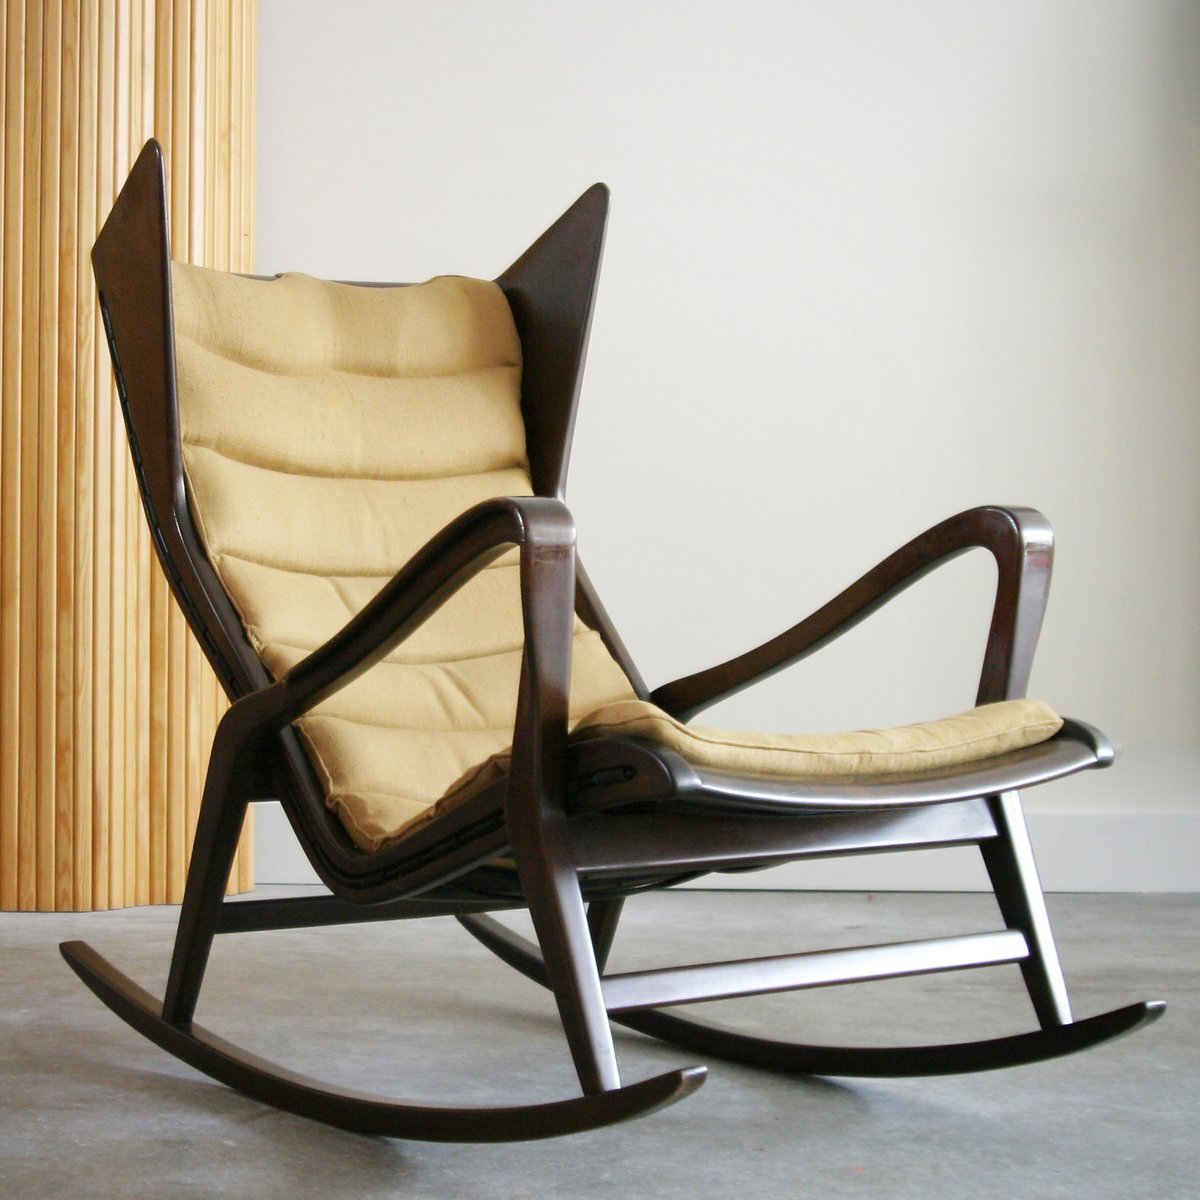 vintage rocking chair by gio ponti for cassina for sale at pamono. Black Bedroom Furniture Sets. Home Design Ideas